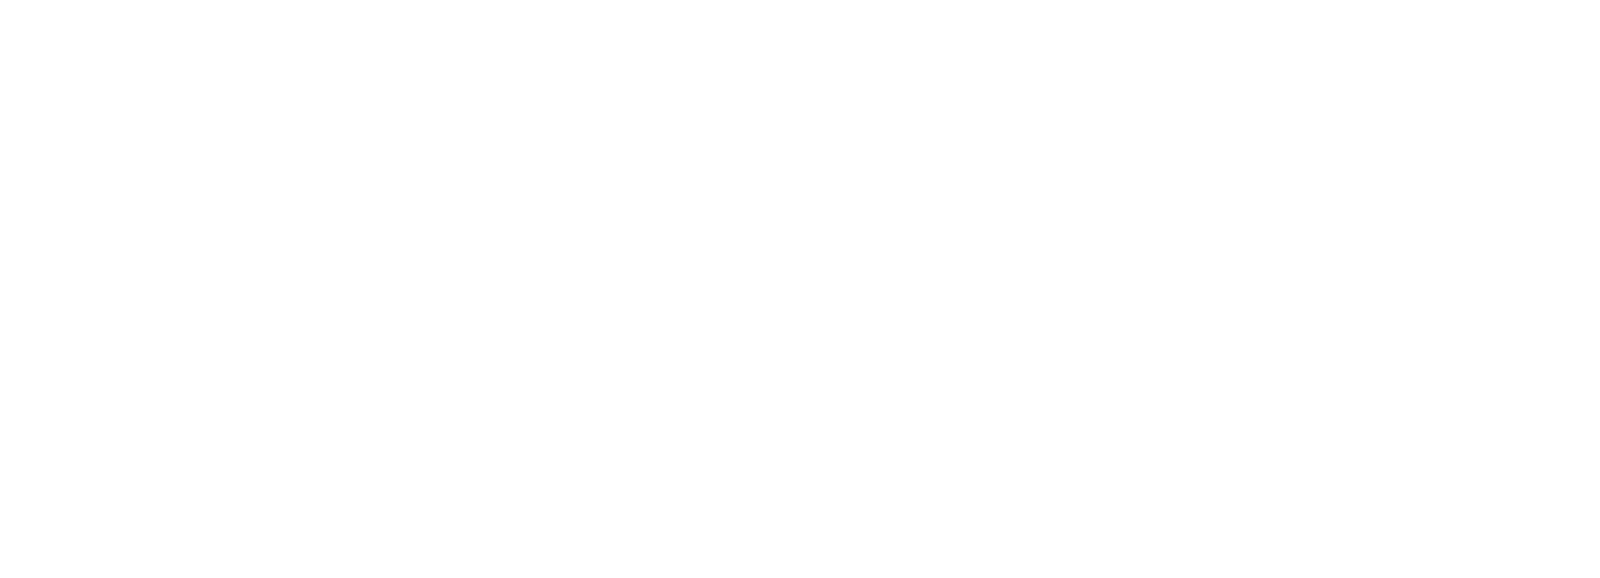 Nude Systems Ethical Hacking Logo